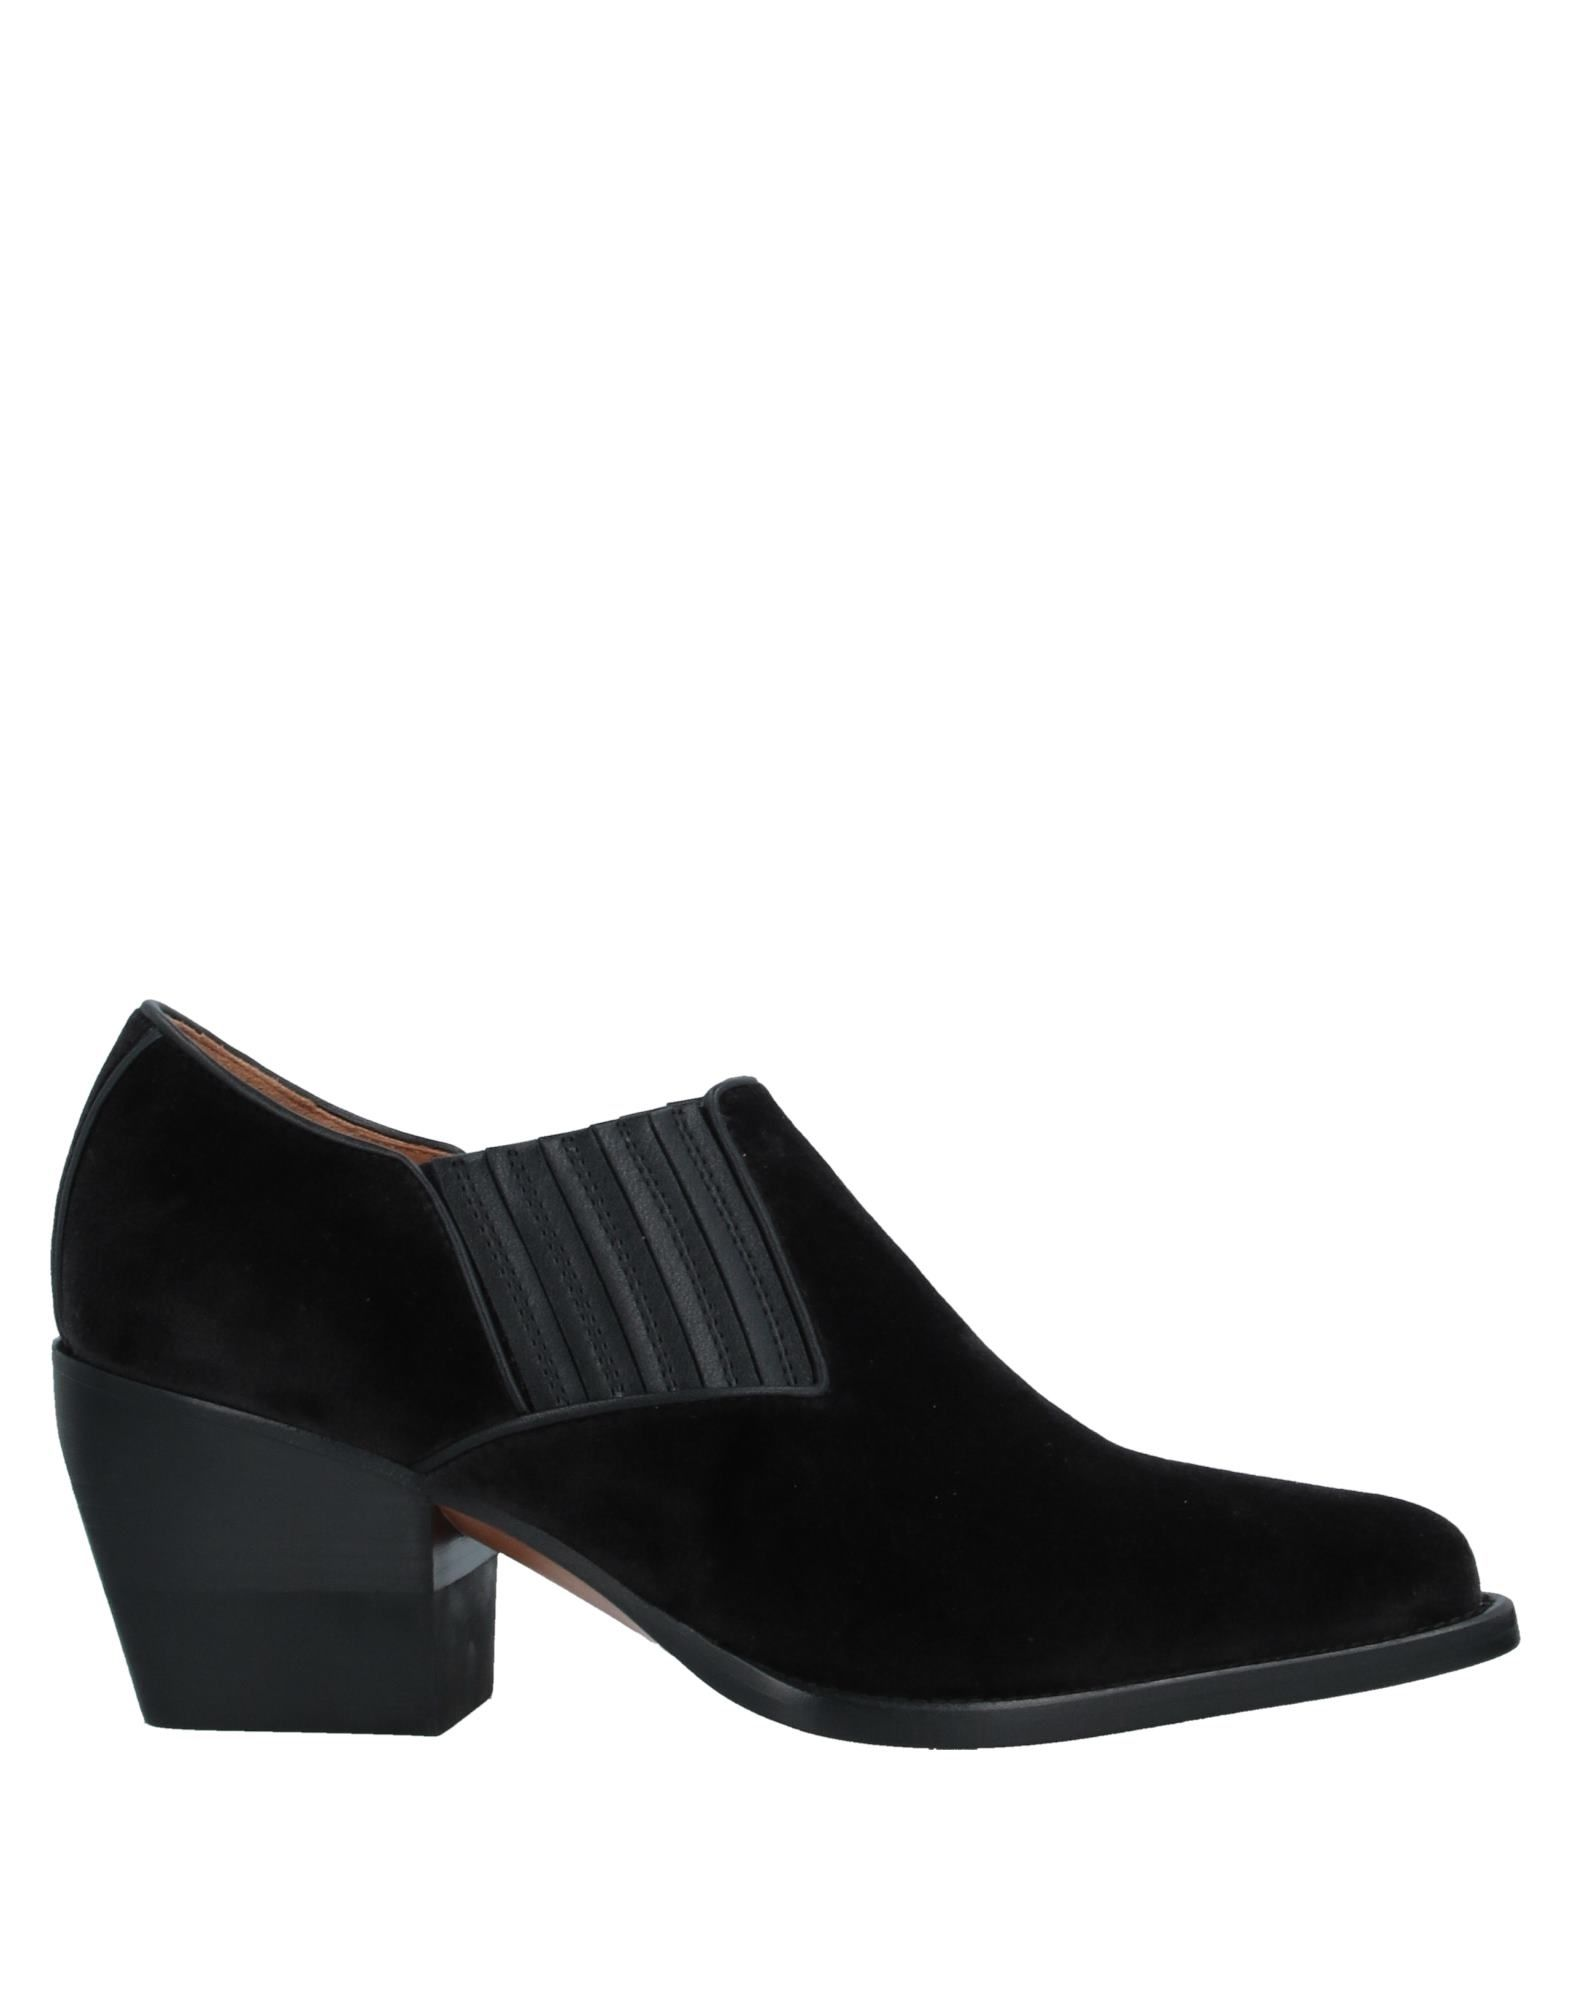 CHLOÉ Booties. velvet, no appliqués, basic solid color, elasticized gores, narrow toeline, square heel, leather lining, leather sole, contains non-textile parts of animal origin. Textile fibers